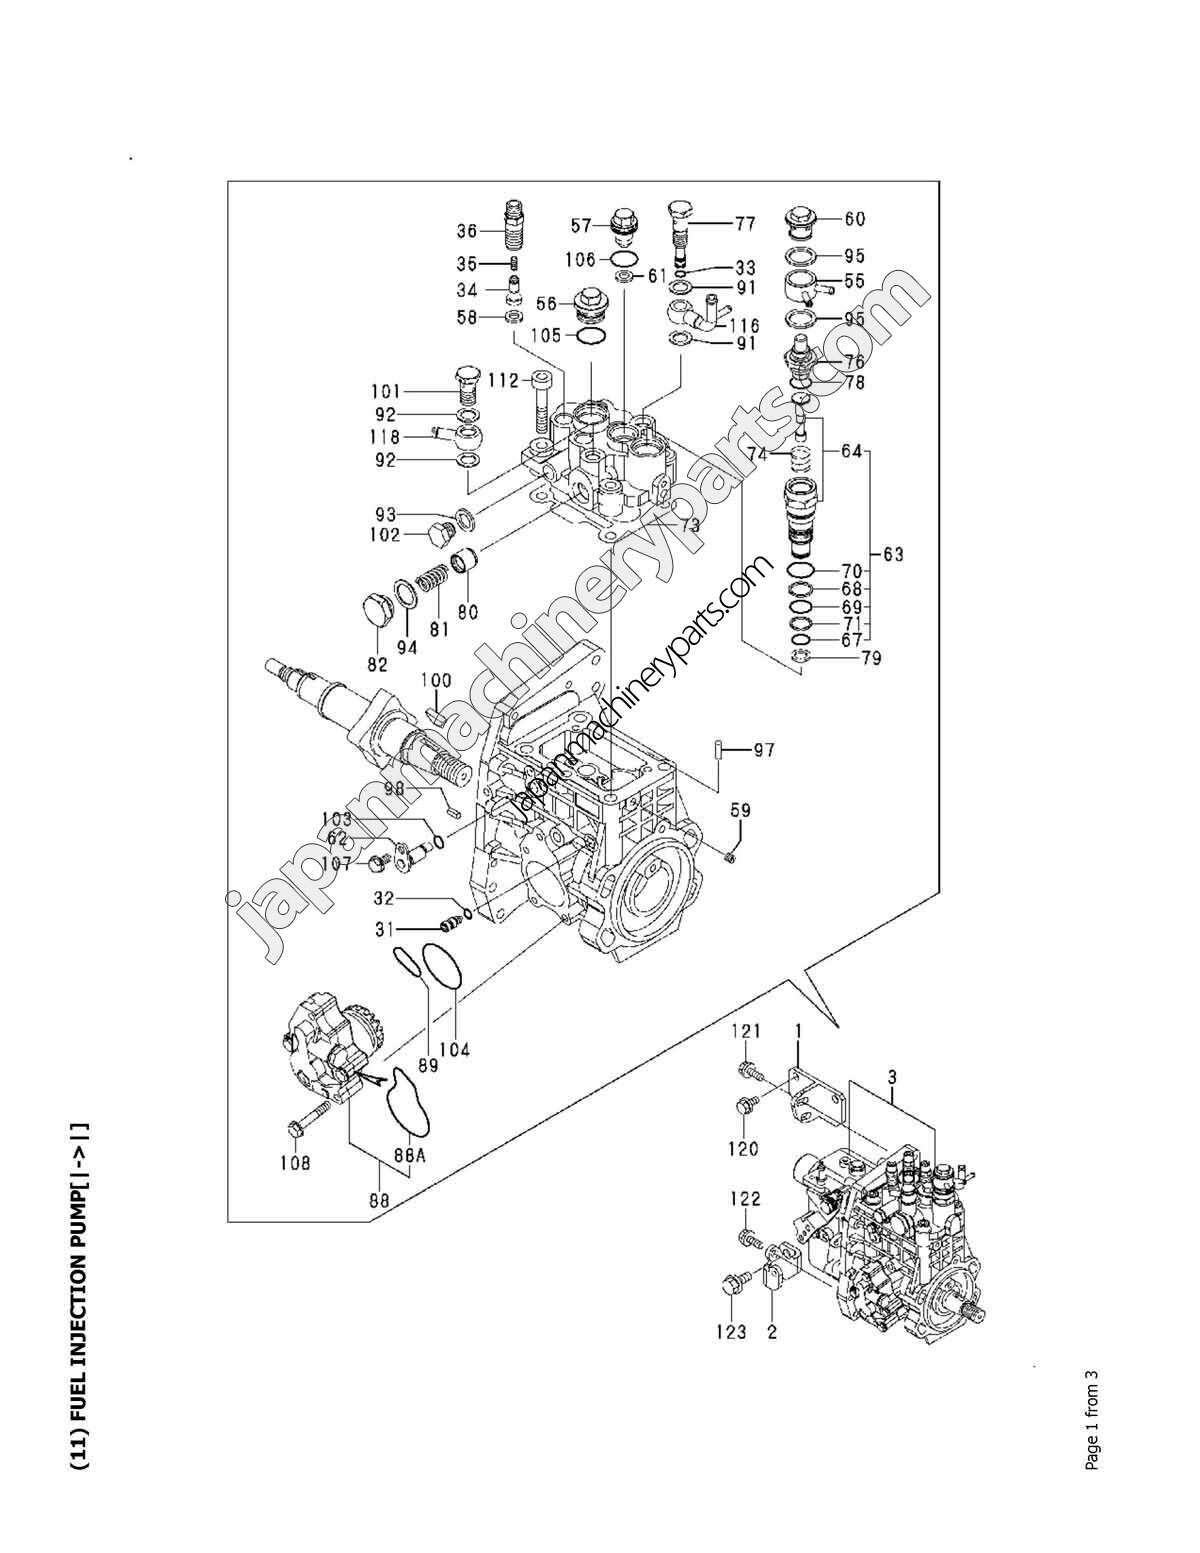 Yanmar 4tnv Wiring Diagrams Ficm Wiring Harness Diagram